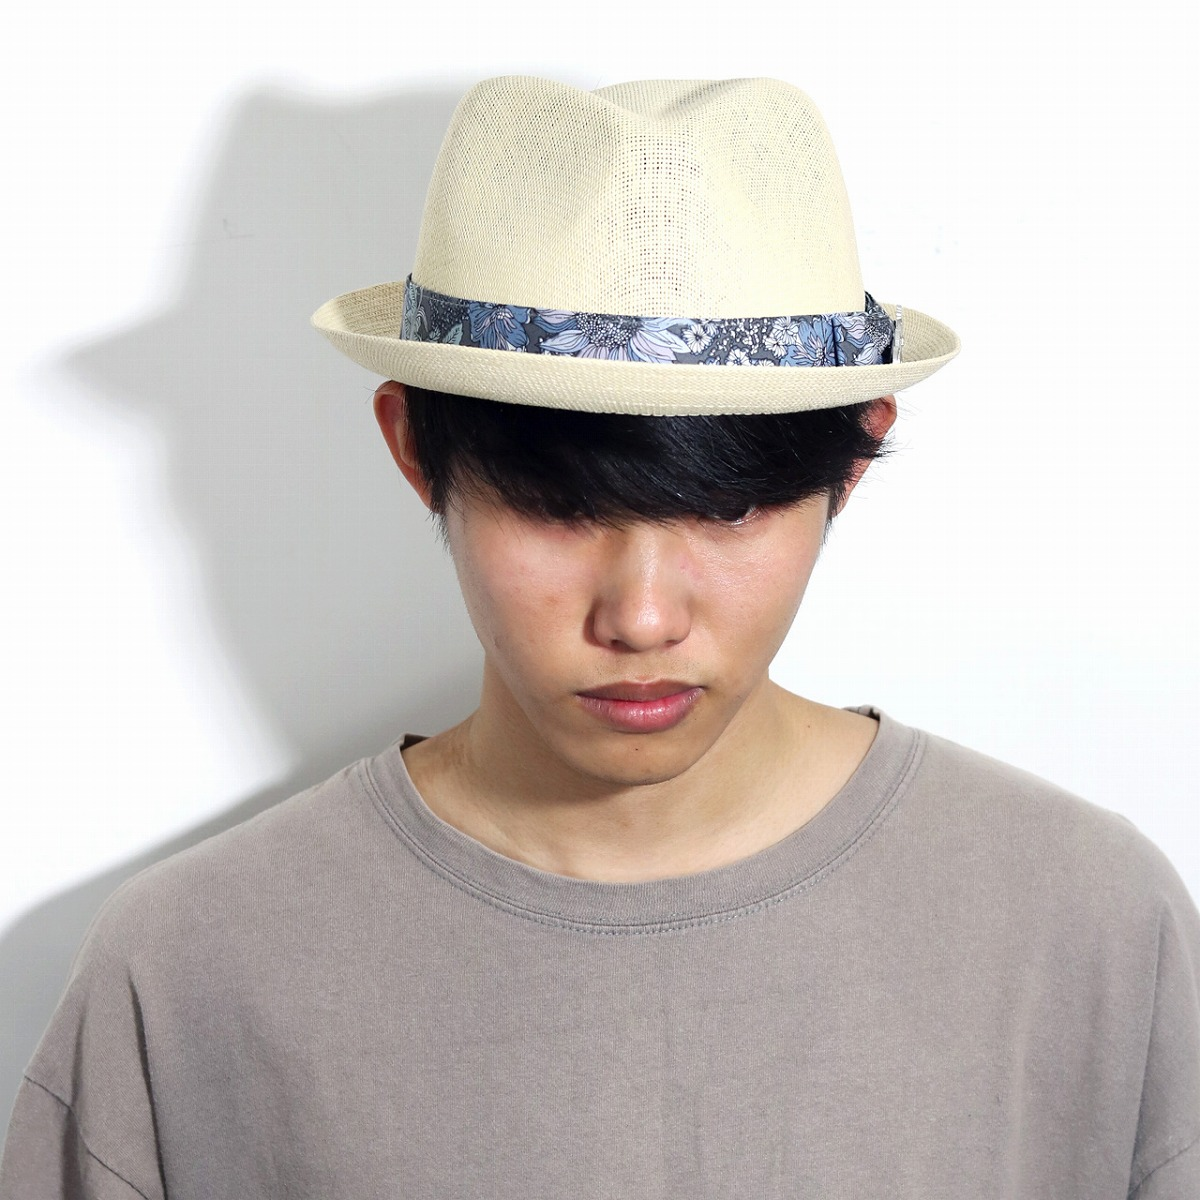 fd703bc2a24 Straw hat men resort fashion Carlos Santana hat soft felt hat Toyo straw hat  import CARLOS ...